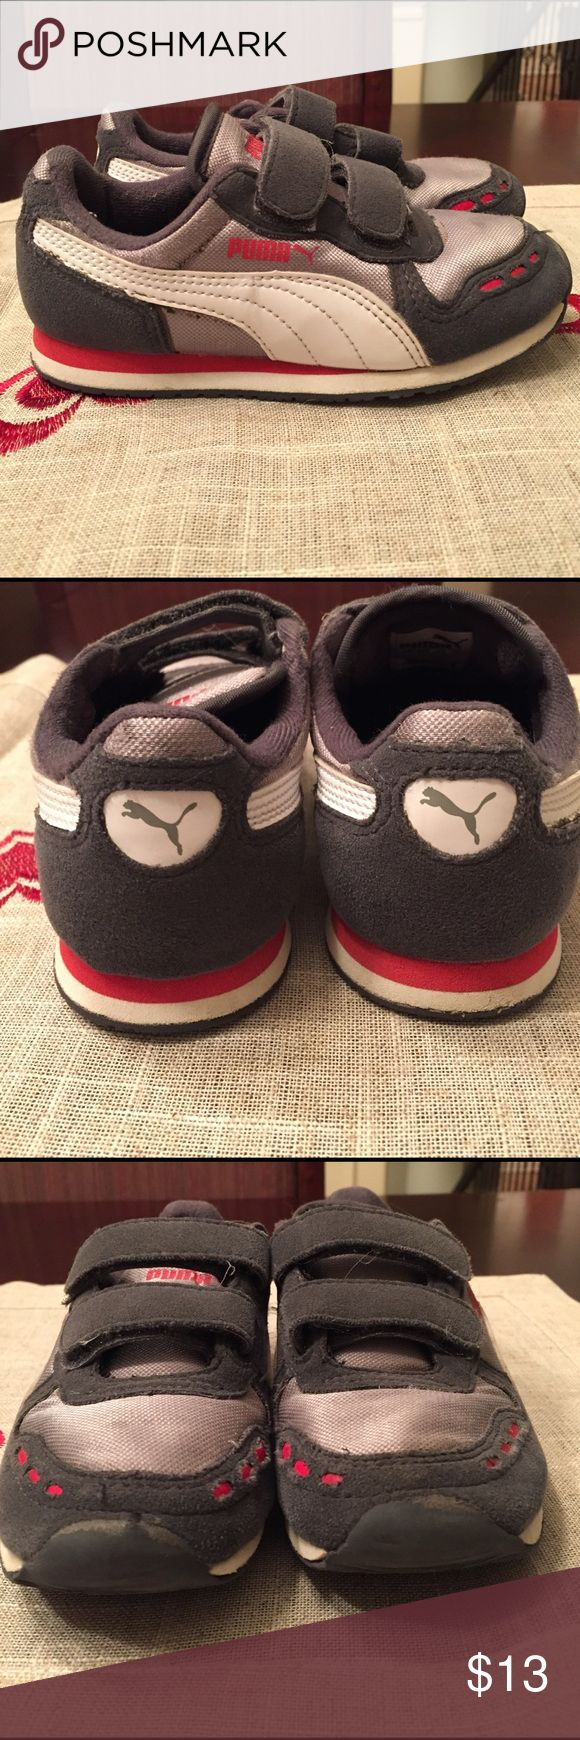 Boys Puma Cabana Racer w/ grey mesh sneakers SZ 11.5. Grey with some red. Worn. Minor scratches on front but not very noticeable. Still in box 📦 Puma Shoes Sneakers